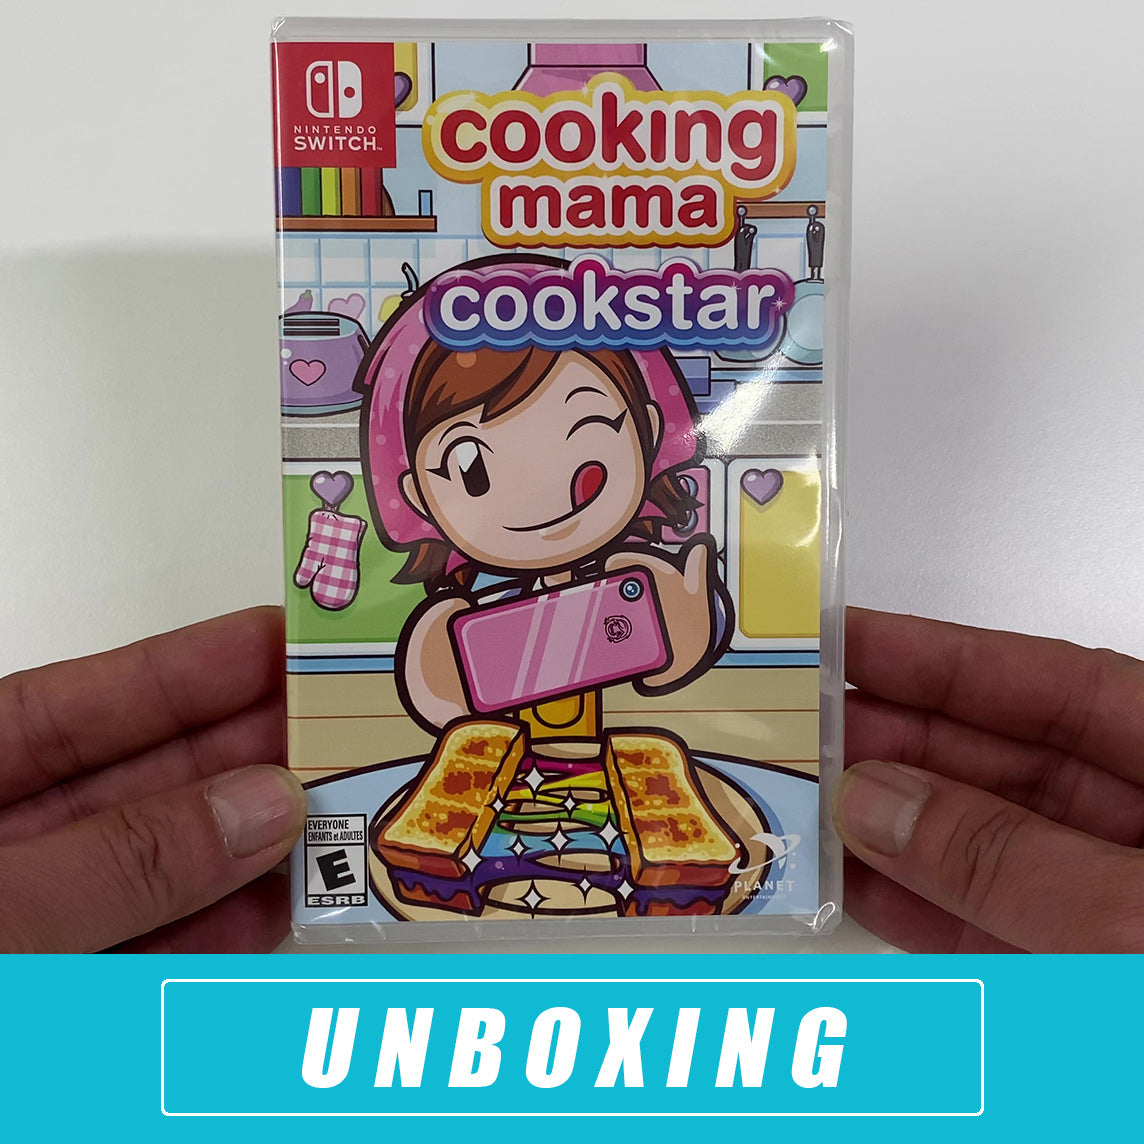 Cooking Mama: Cookstar 2020 Unboxing - Nintendo Switch